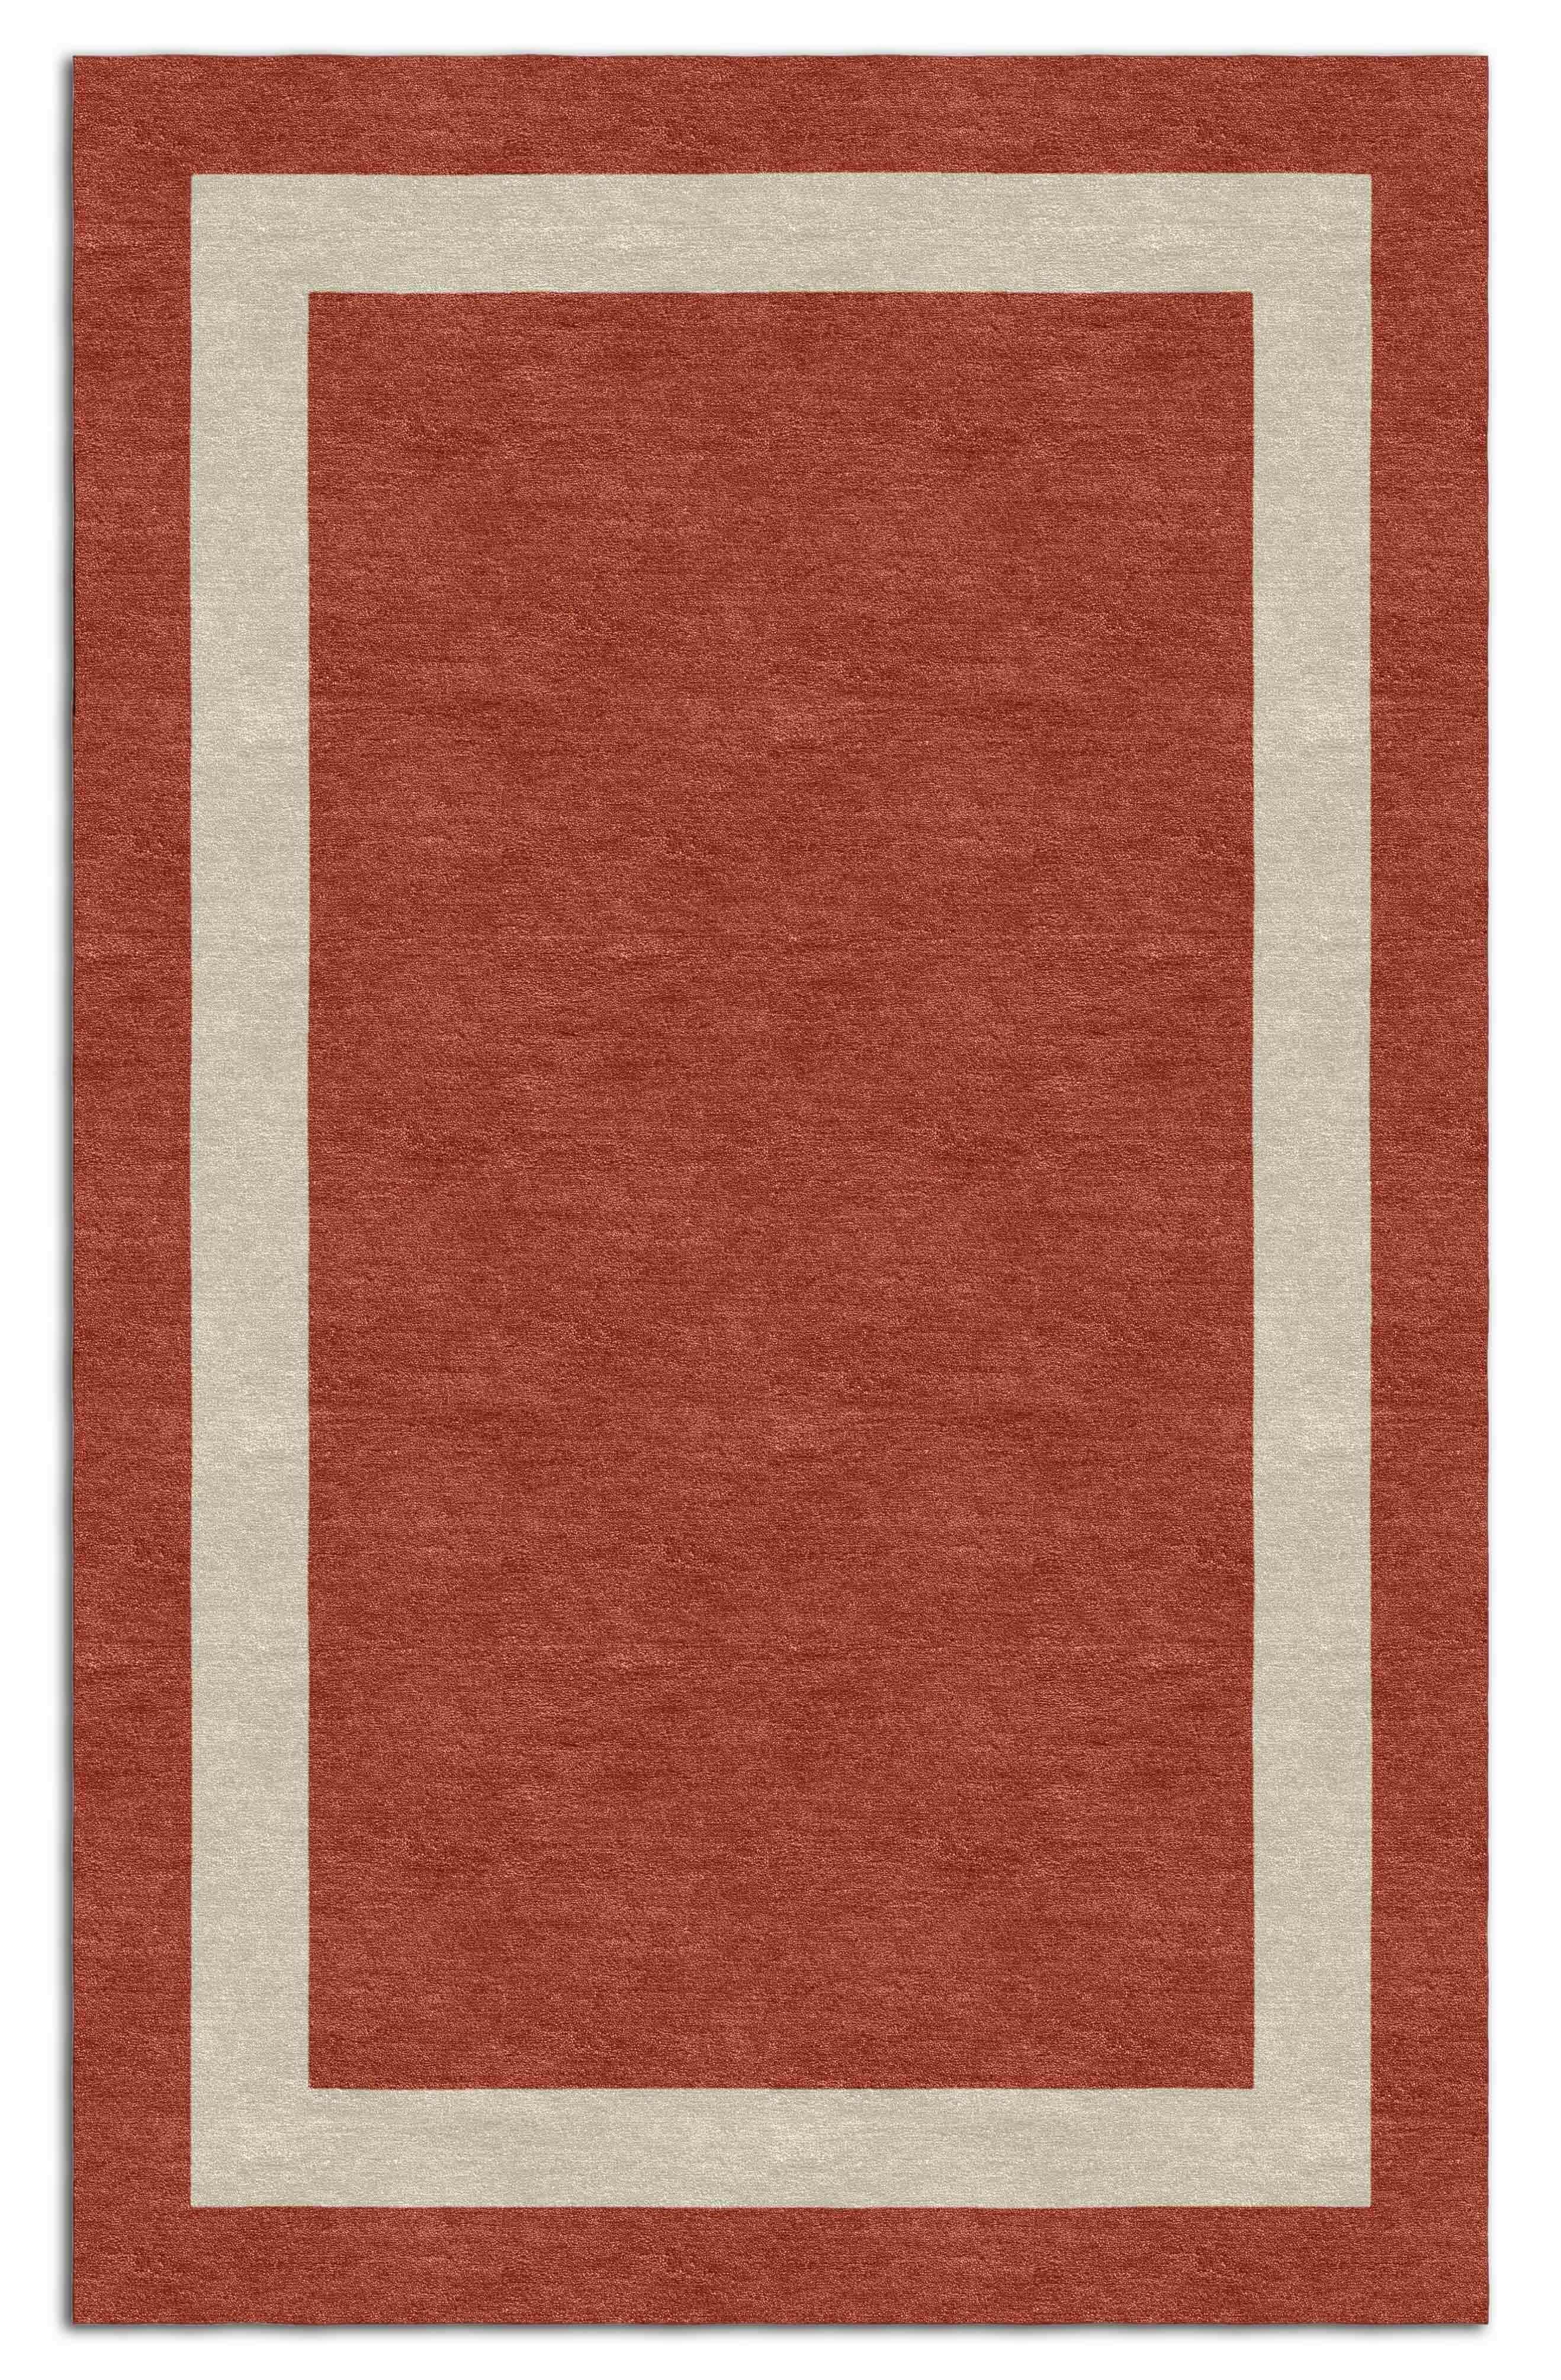 Darby Home Co Mowbray Stripe Hand Tufted Wool Red Area Rug Wayfair